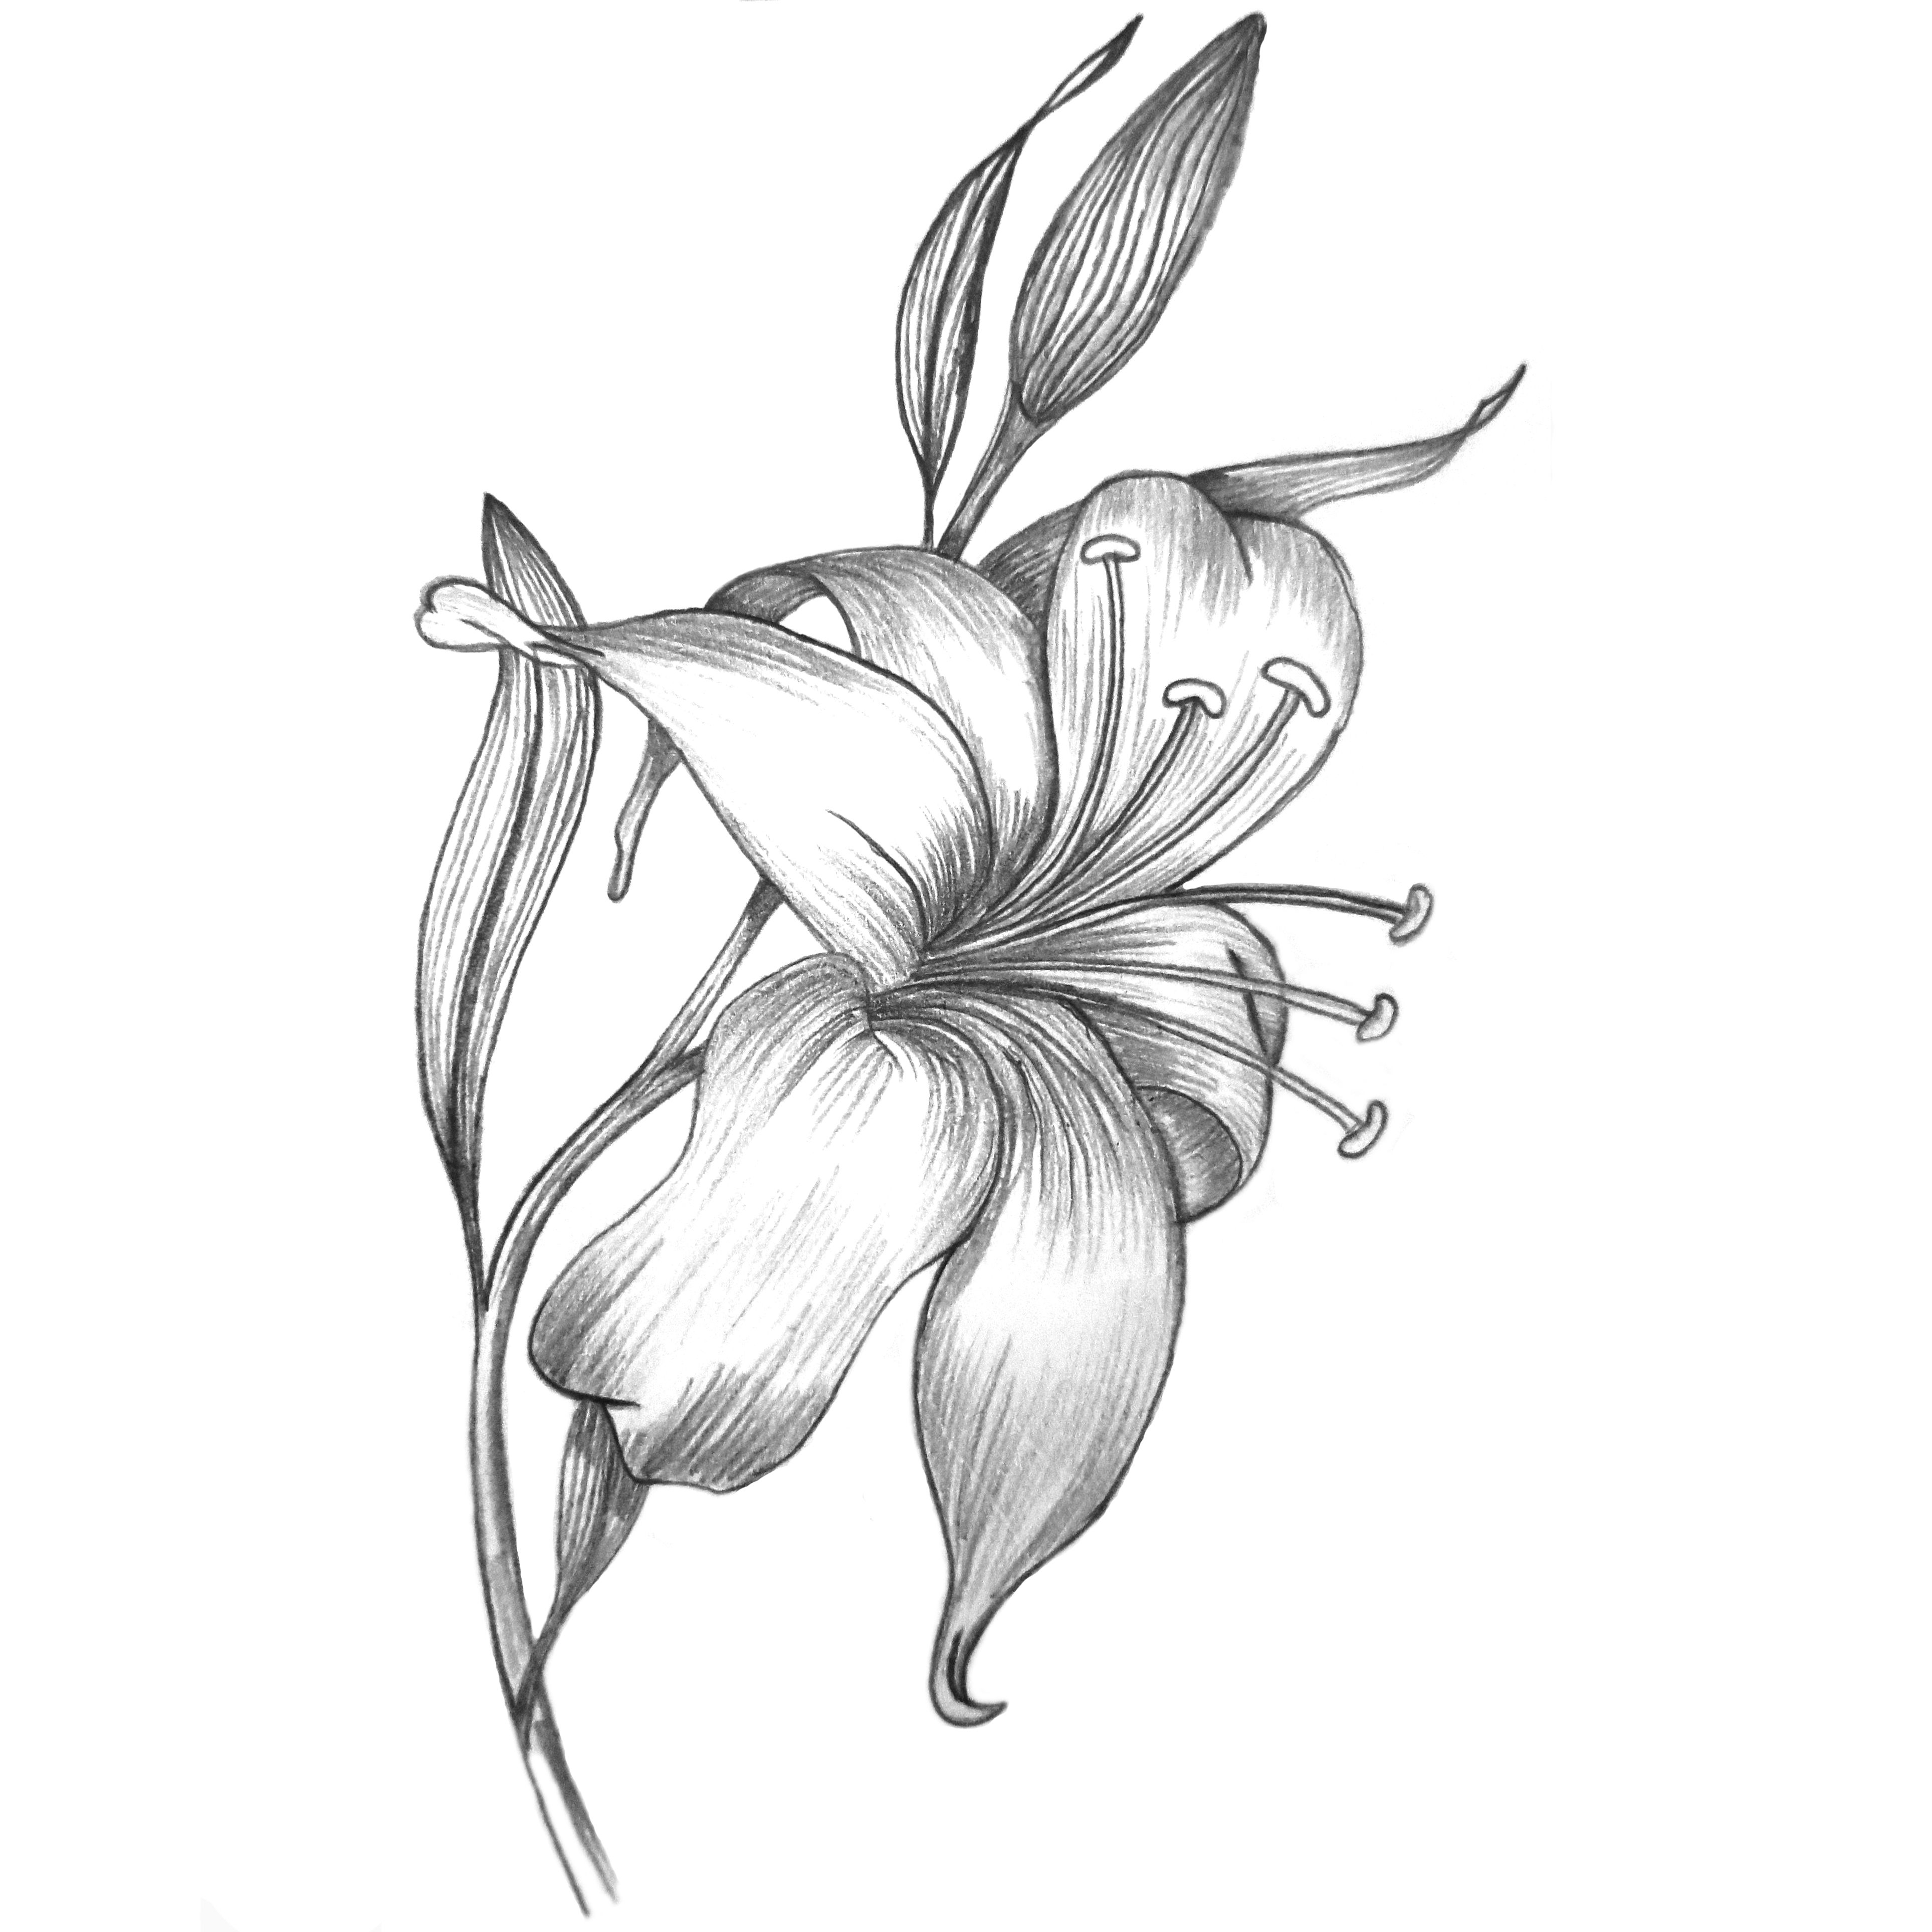 Pencil sketch lily flower mespilia drawings pinterest pencil sketch lily flower mespilia izmirmasajfo